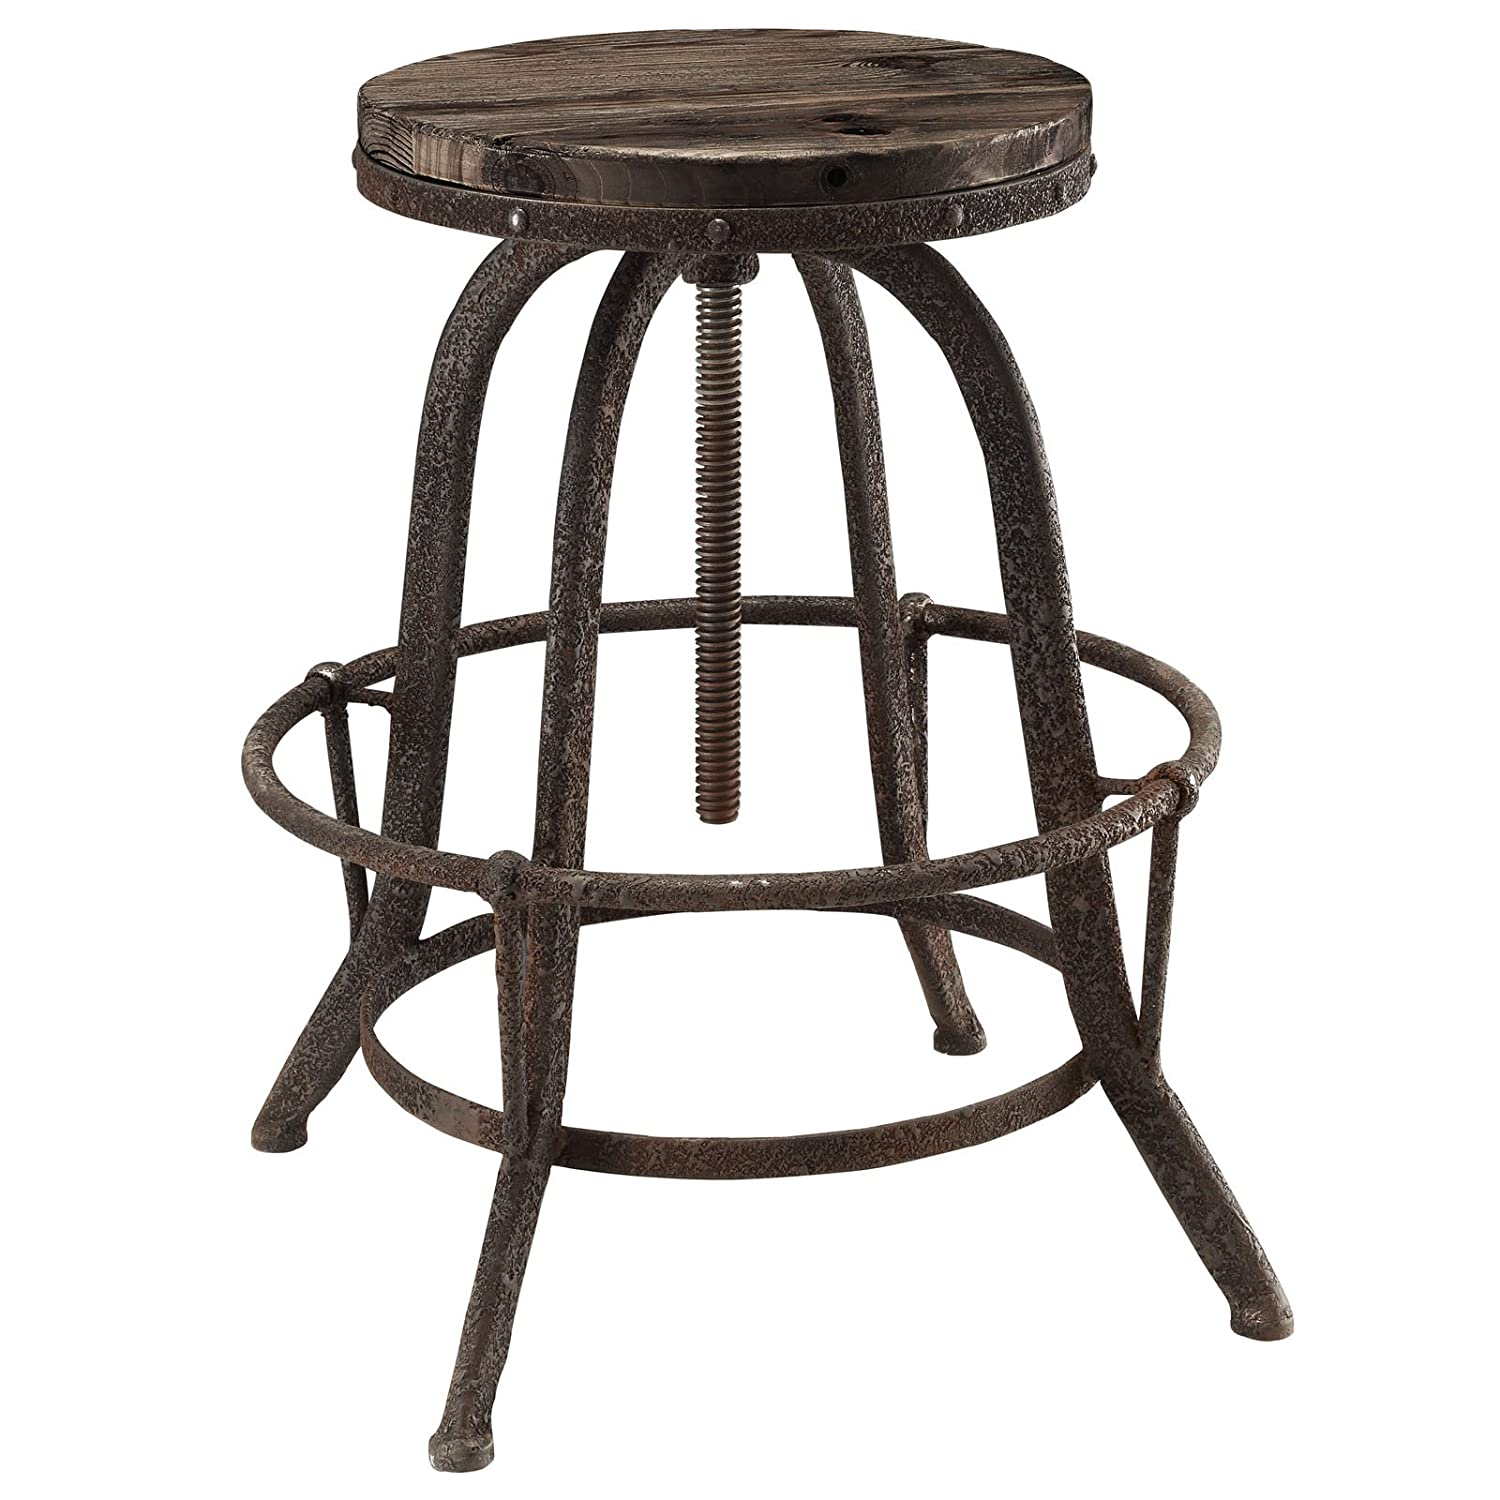 Modway Collect Industrial Modern Rustic Farmhouse Wood Cast Iron Bar Stool in Brown